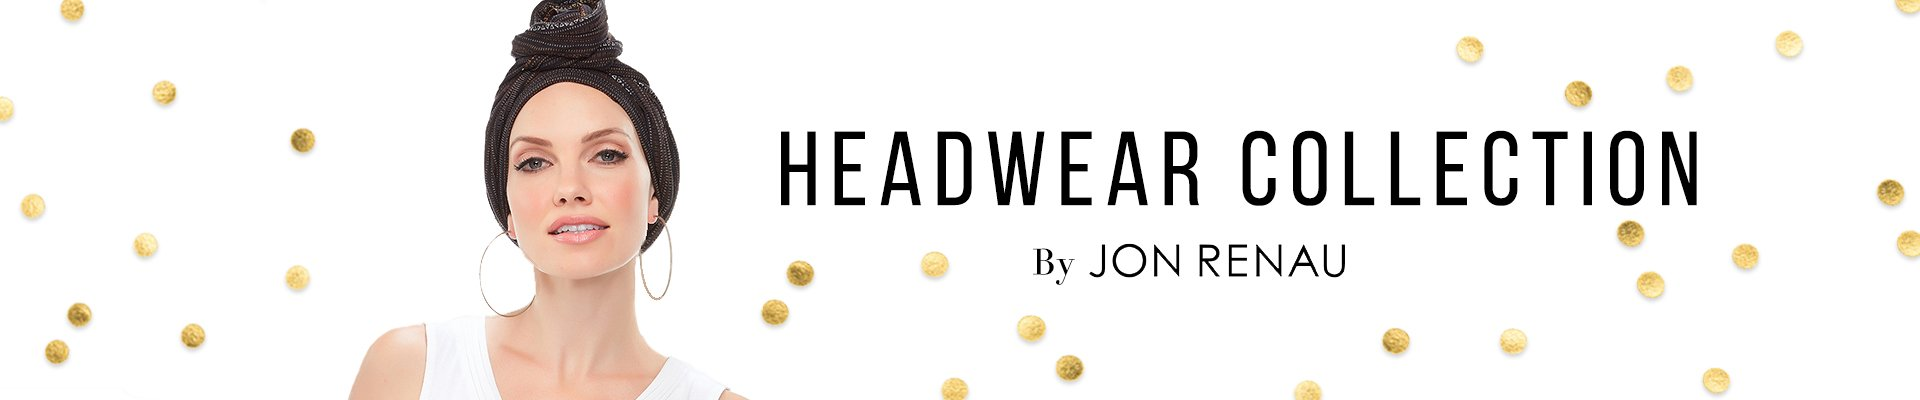 Headwear Collection By Jon Renau